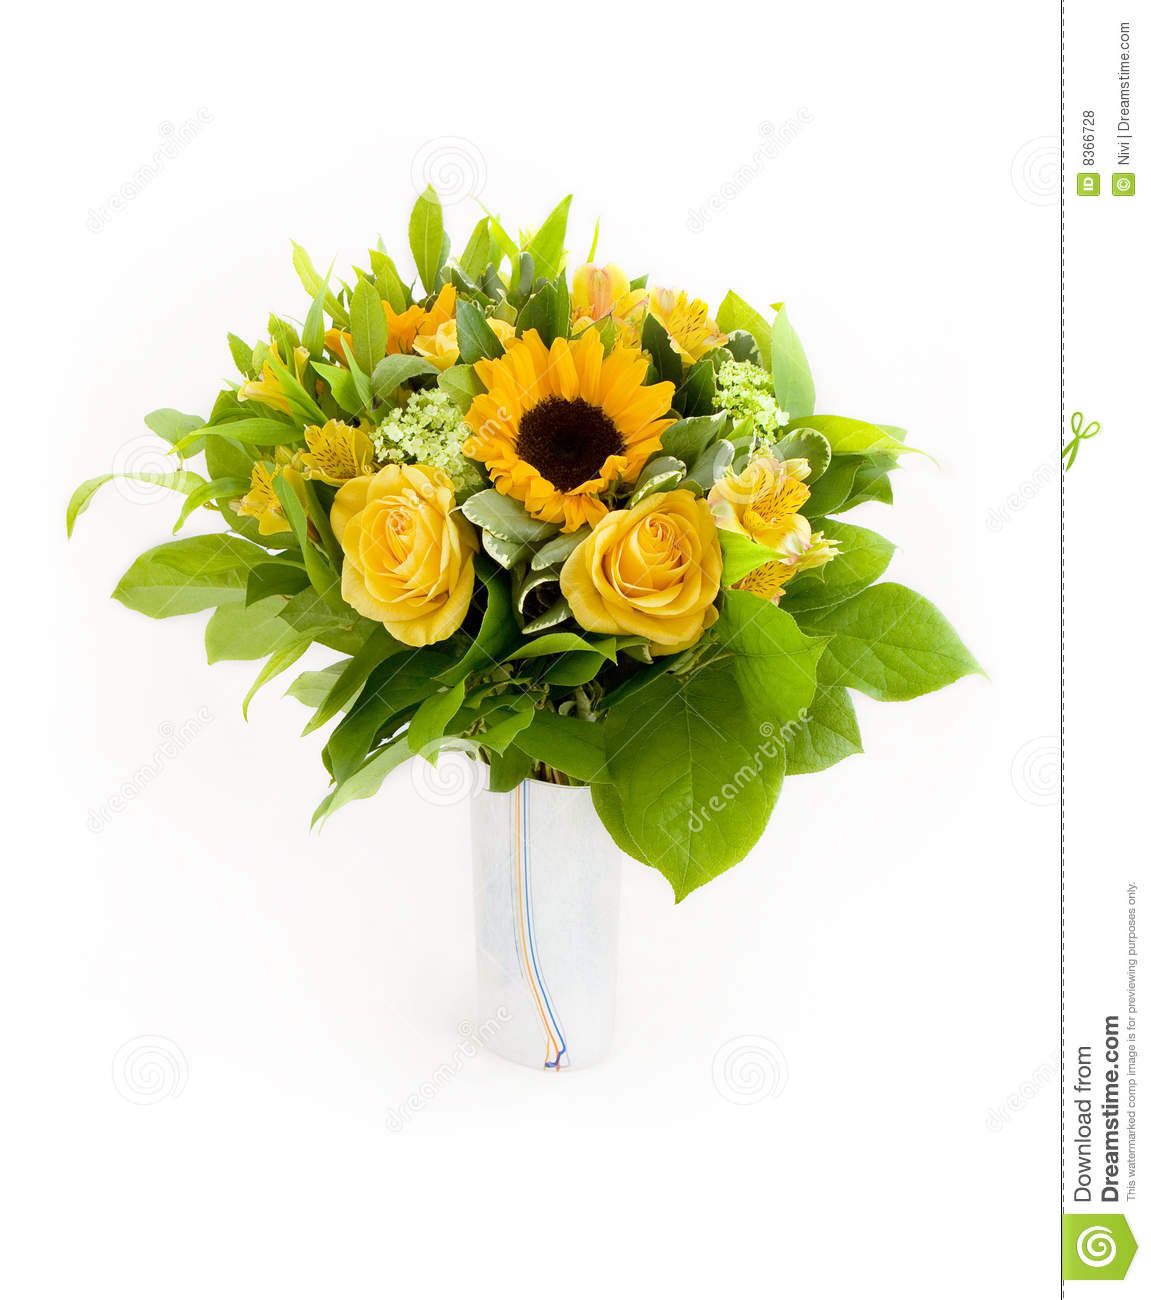 Yellow flowers bouquet stock photo image of arrangement 8366728 yellow flowers bouquet izmirmasajfo